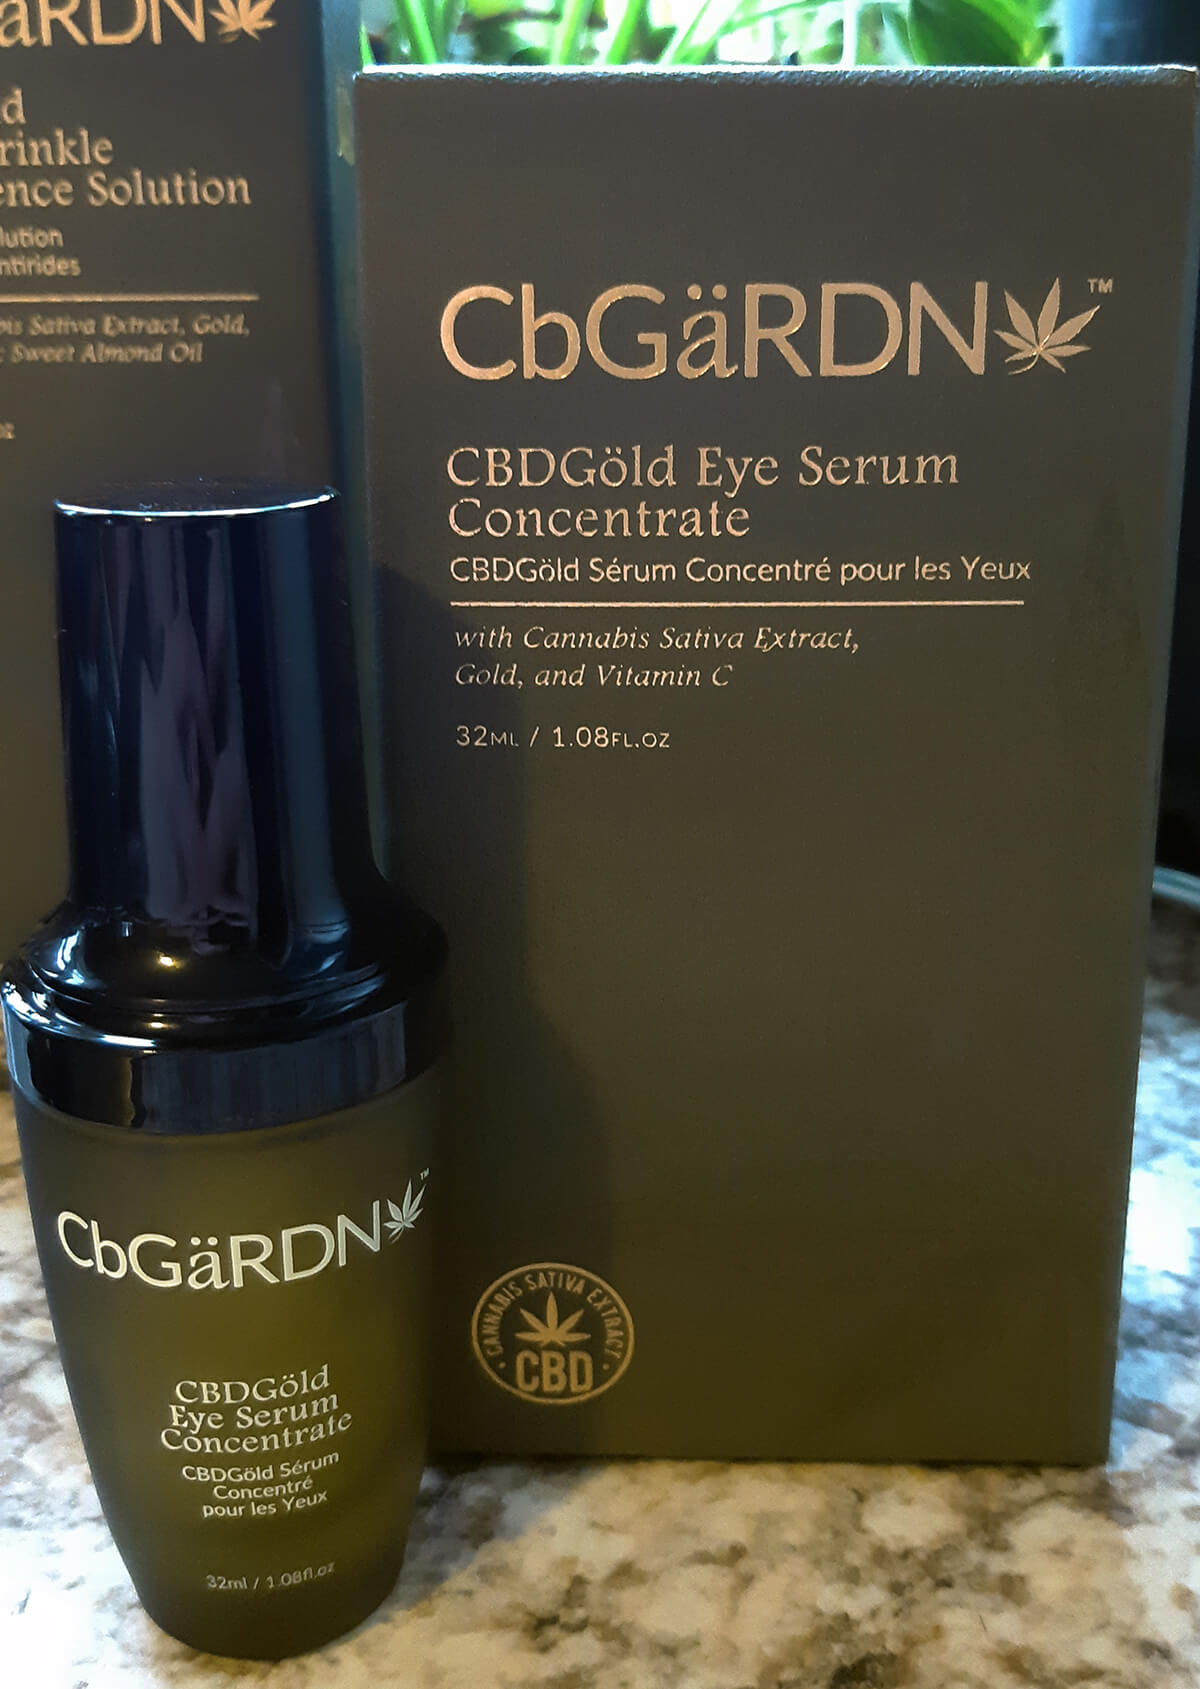 CBDGold Eye Serum Concentrate with box